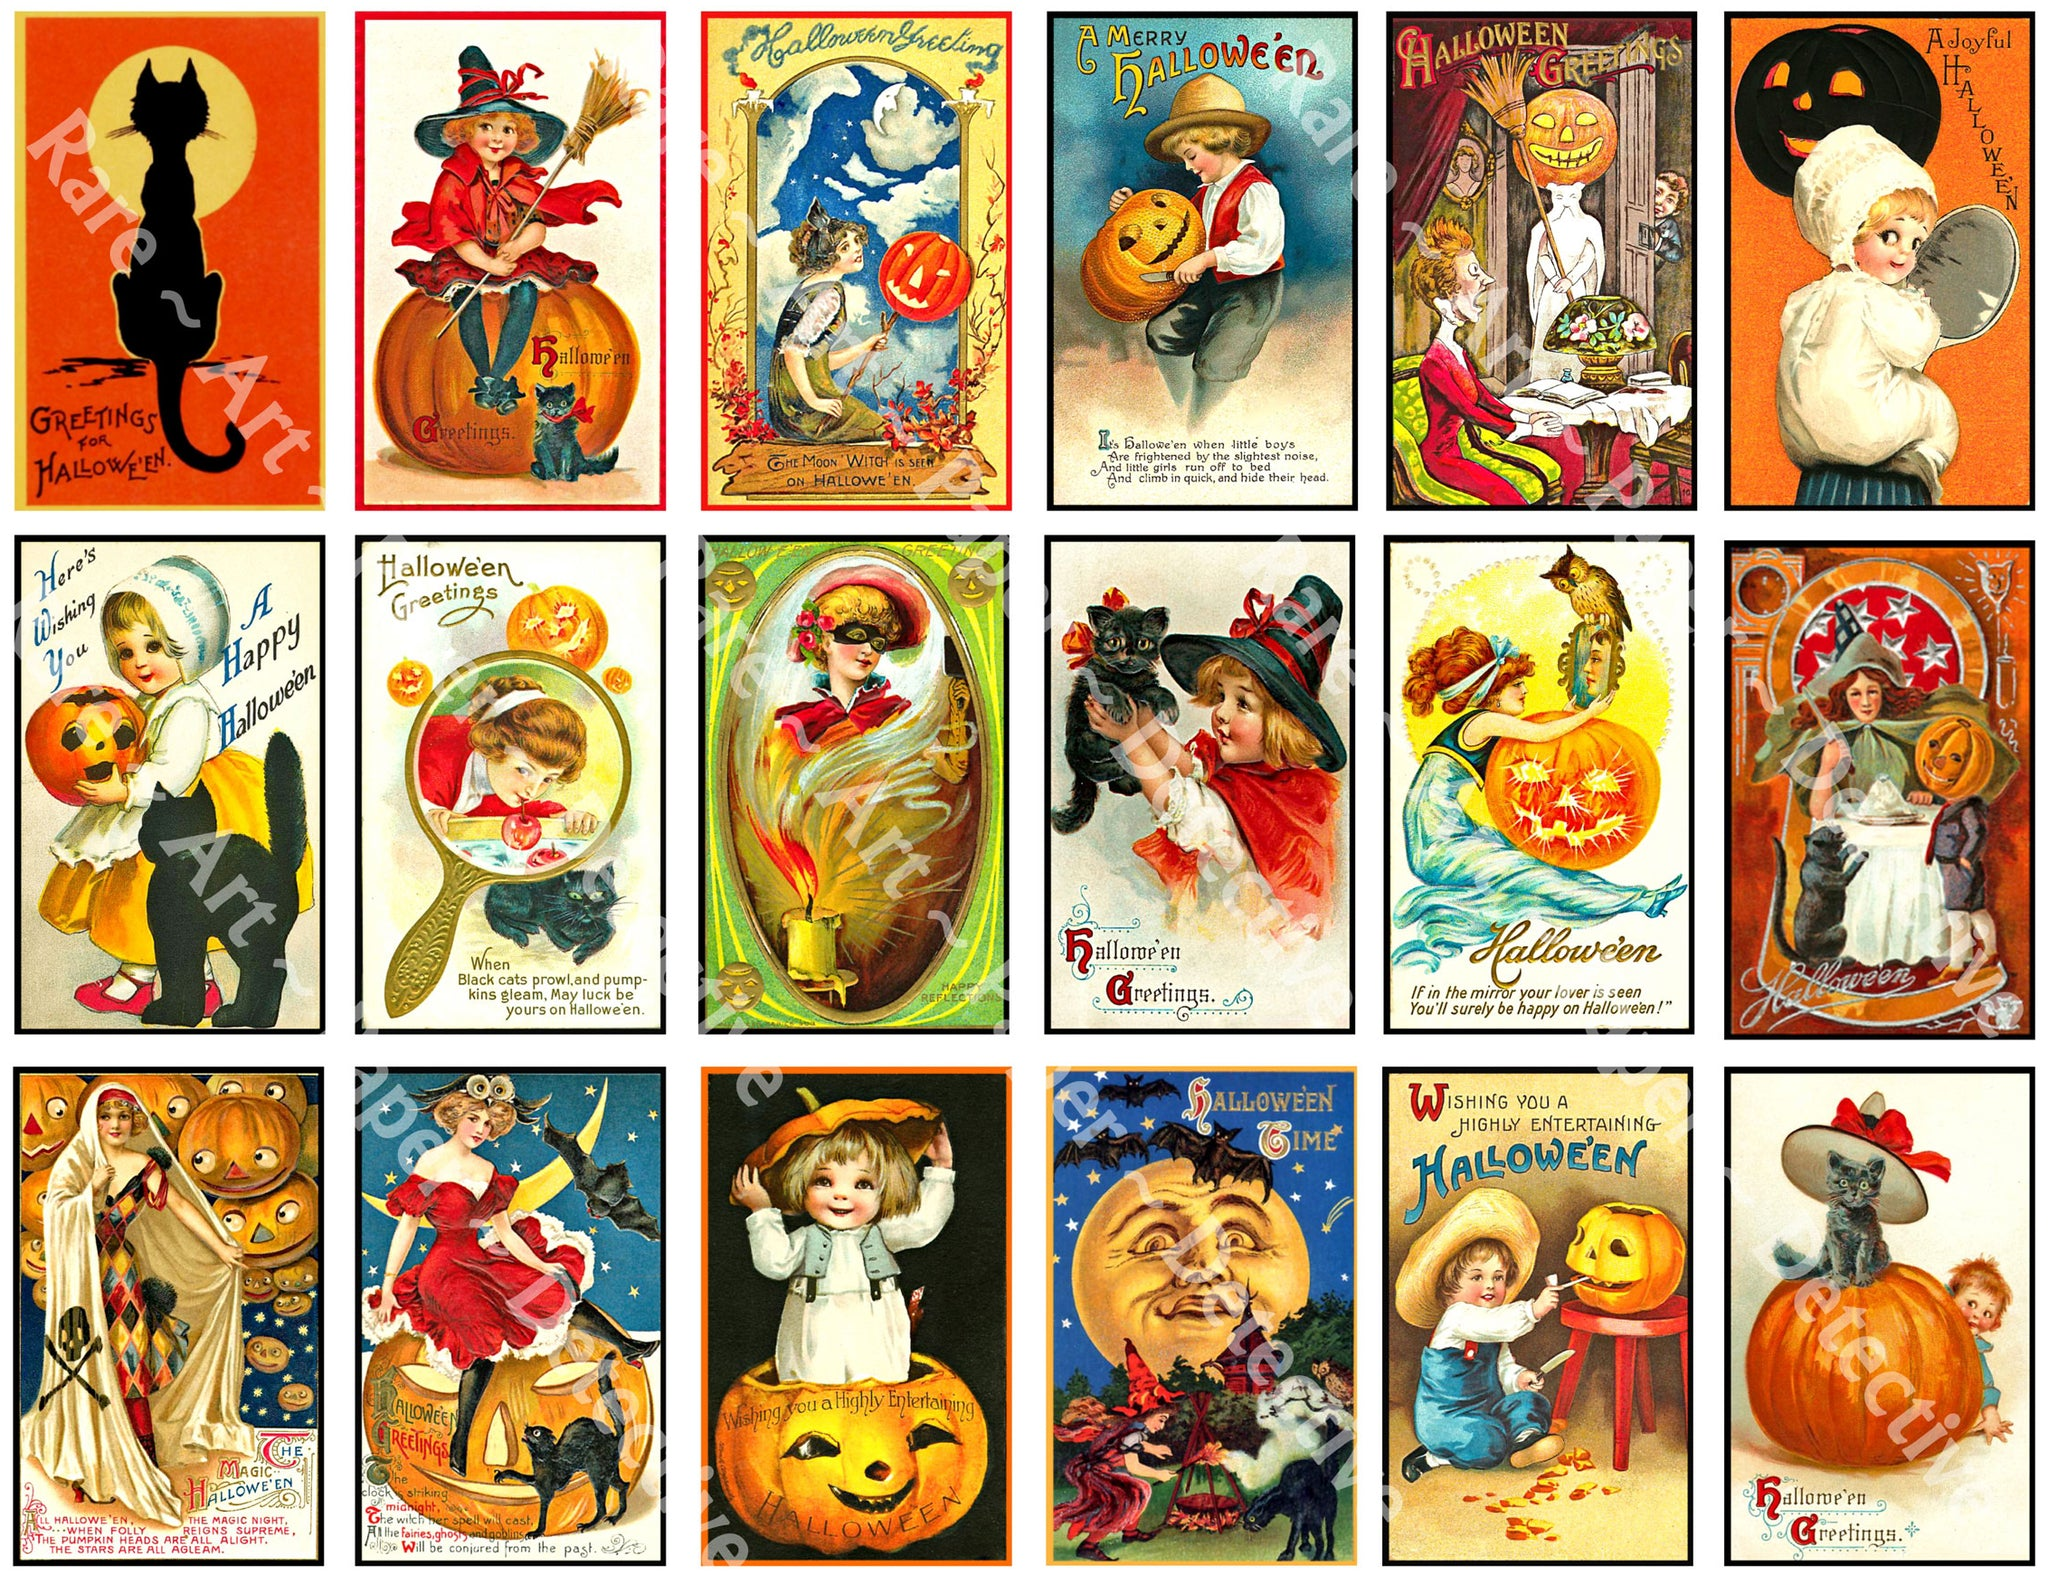 18 Halloween Clip Art Stickers, Mini Victorian Halloween Postcard Images & Spooky Illustrations, Black Cats & Pumpkins, Halloween Party Novelty